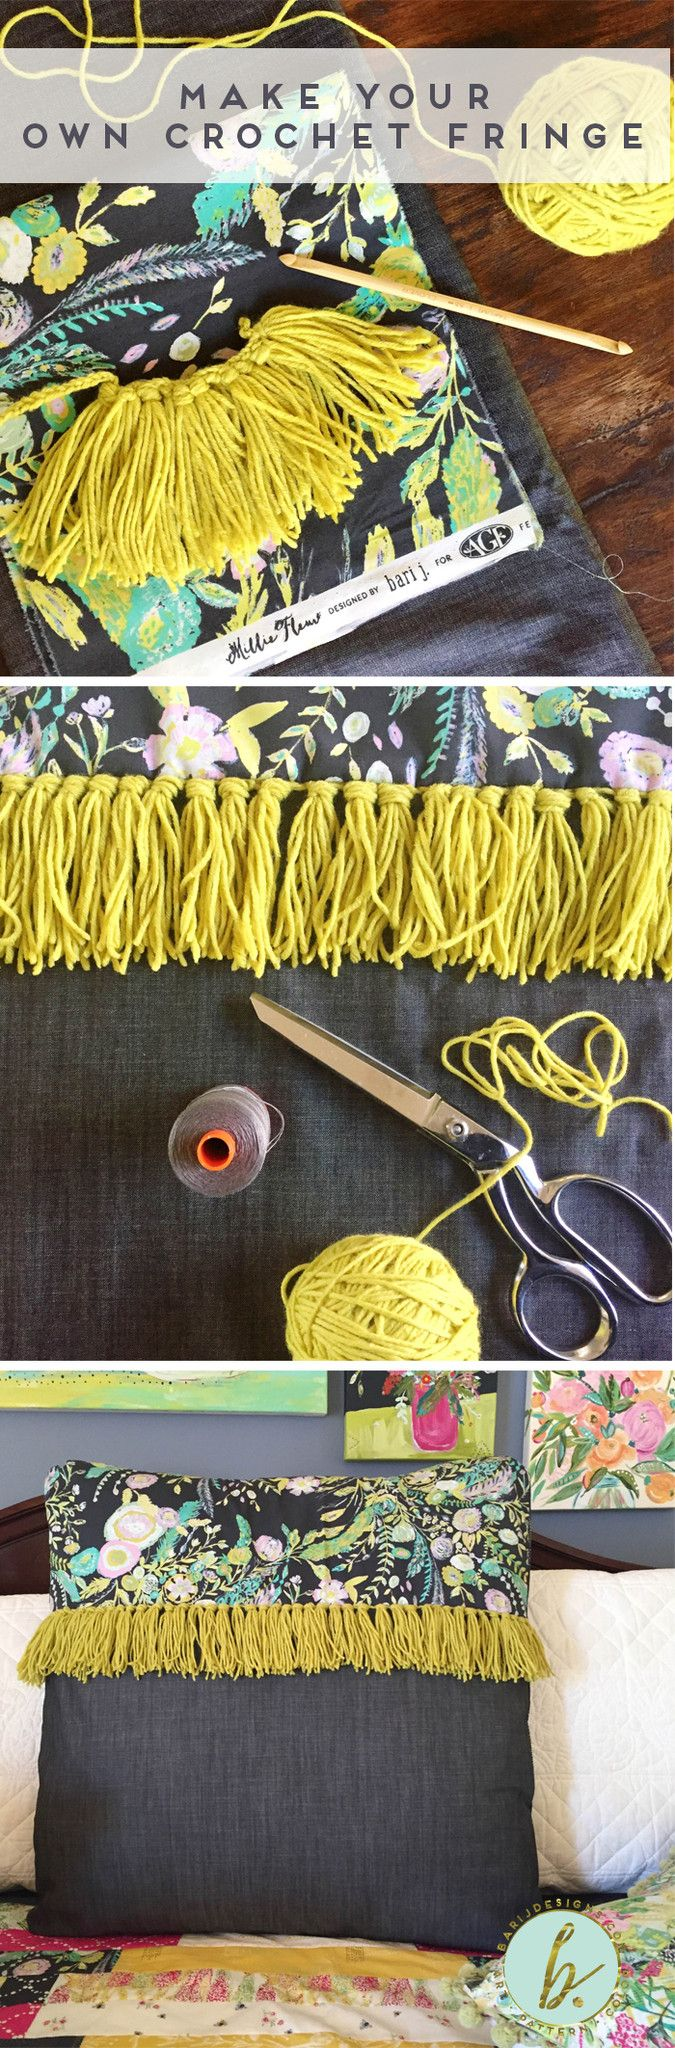 The new Art Gallery Fabrics Denim arrived this weekend, and I was chomping at the bit to make a pillow with Millie Fleur and some fringe. Of course, being picky